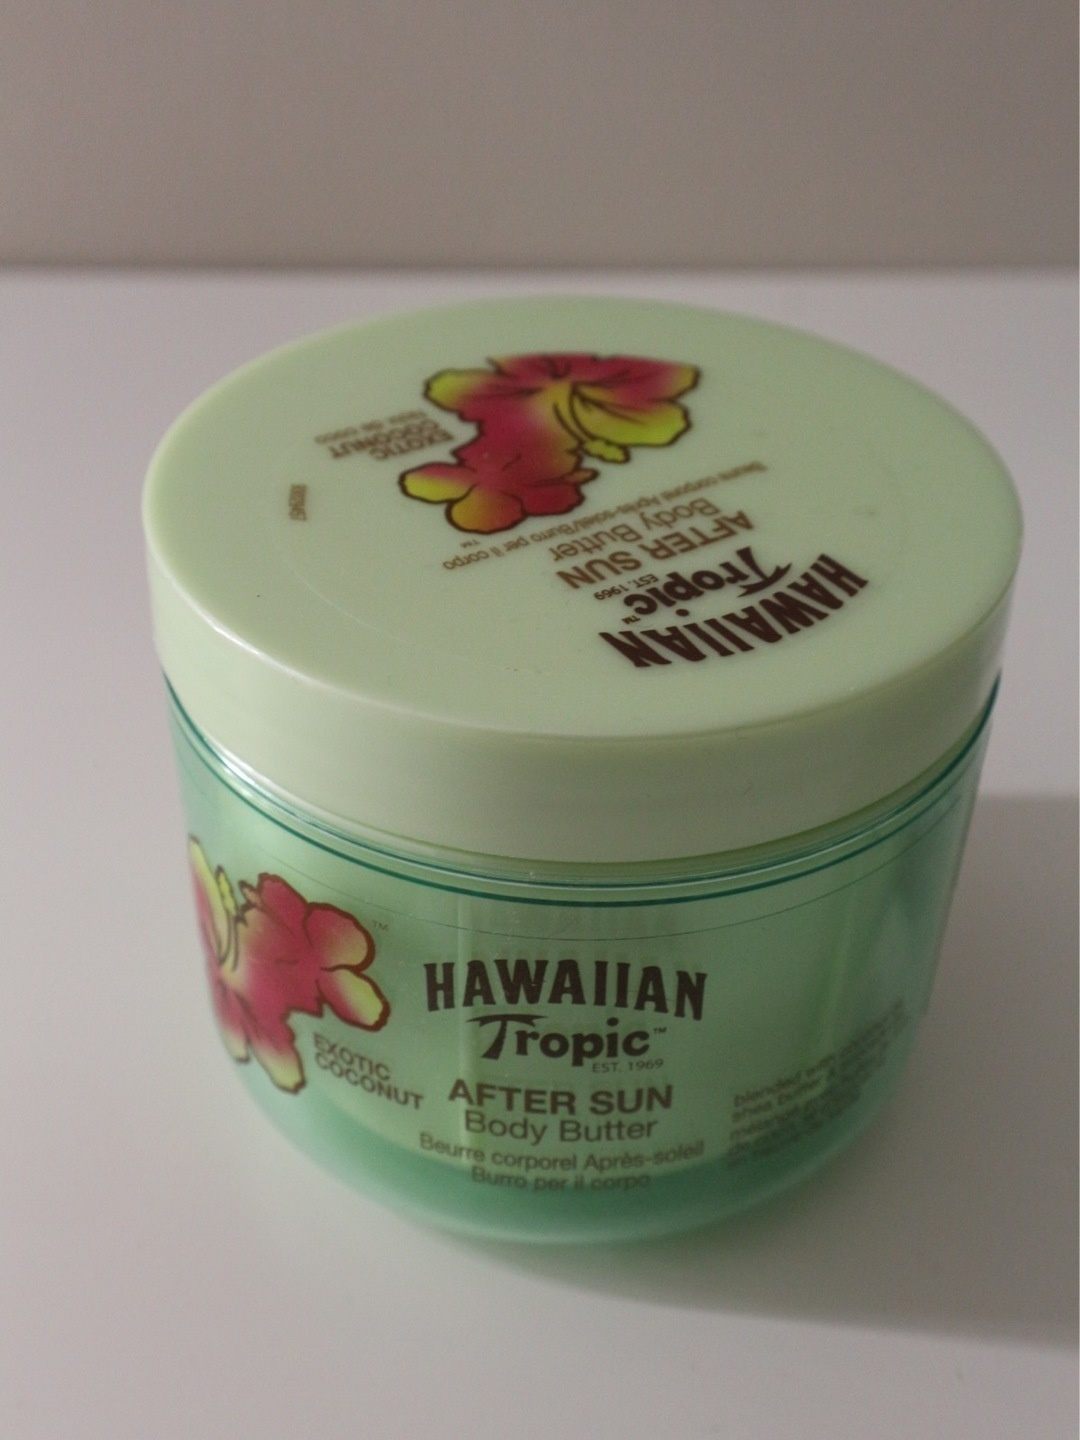 Women's cosmetics & beauty - HAWAIIAN TROPIC photo 1